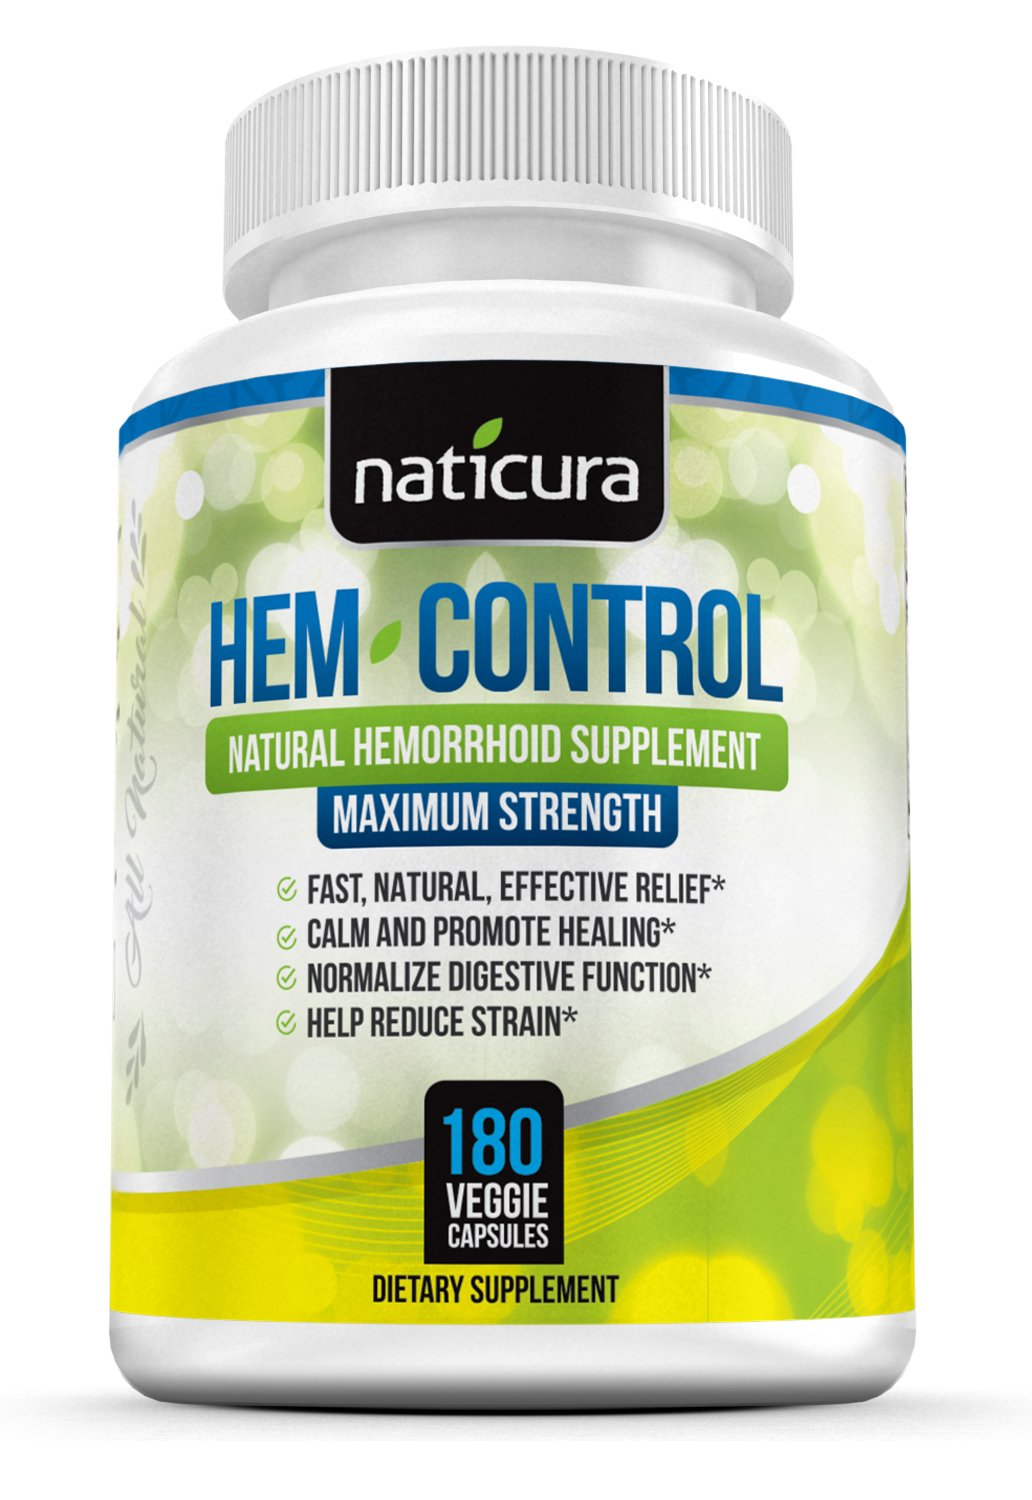 Hem-Control Natural Hemorrhoid Treatment Supplement - Fast & Lasting Pain Relief Pills - Vegan Capsules for Hemroid & Colon Health with Blond Psyllium Husk (180) by Naticura